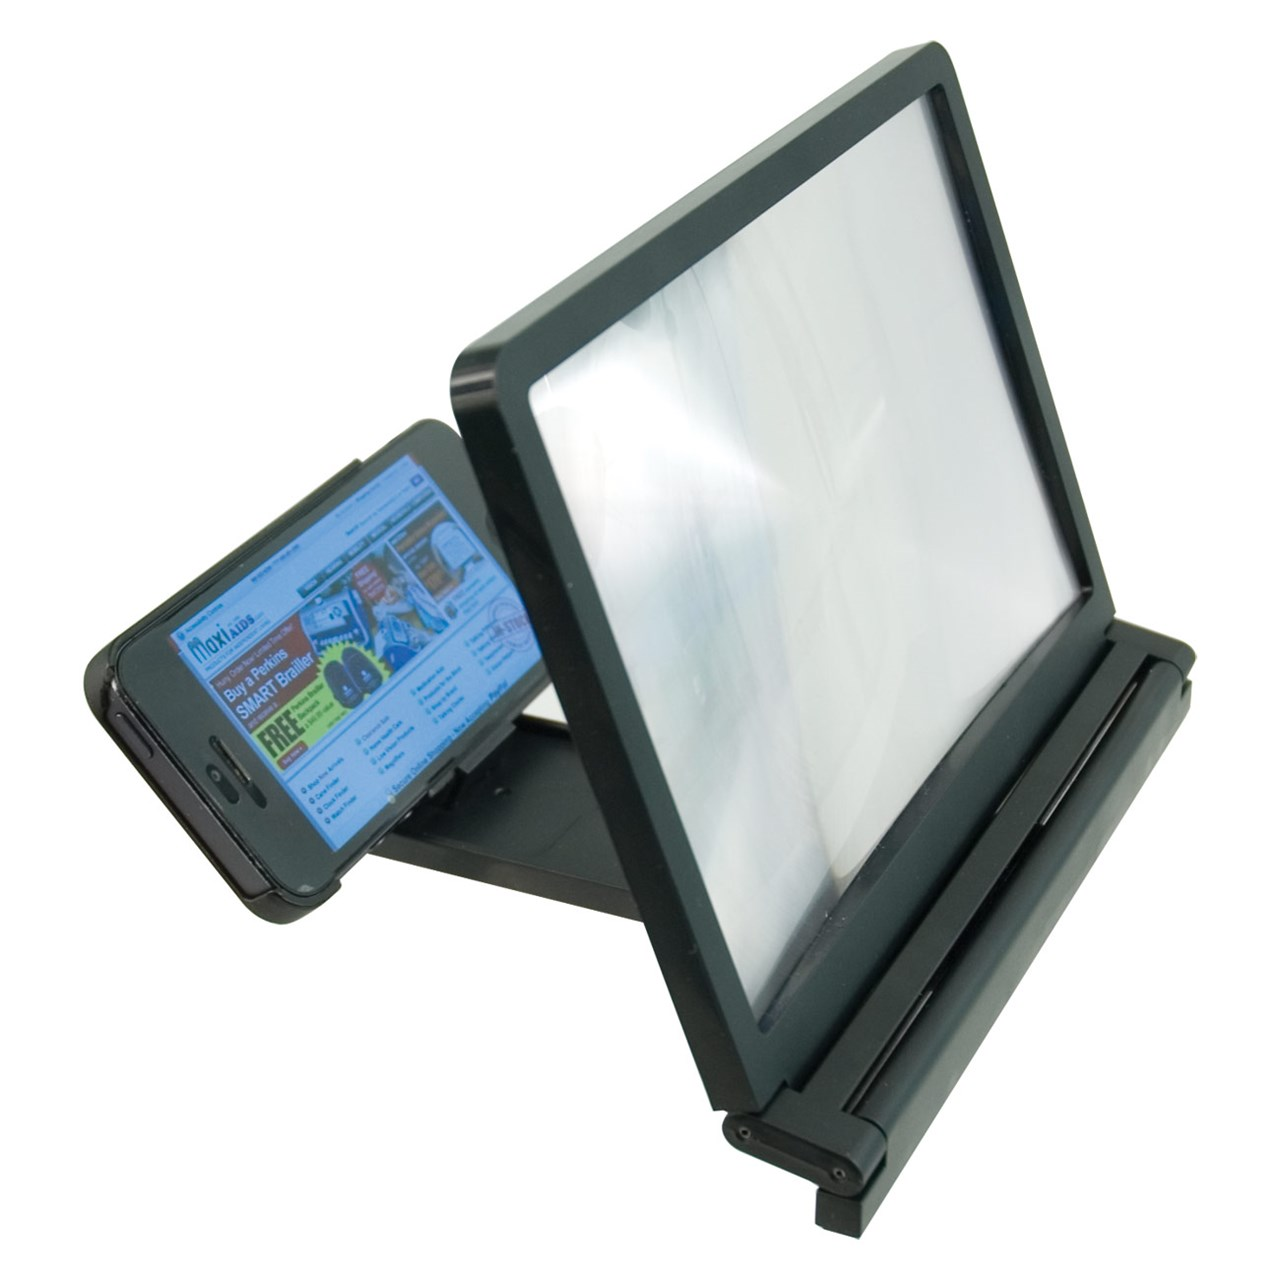 Maxiaids Portable Foldable Smartphone Screen Magnifier